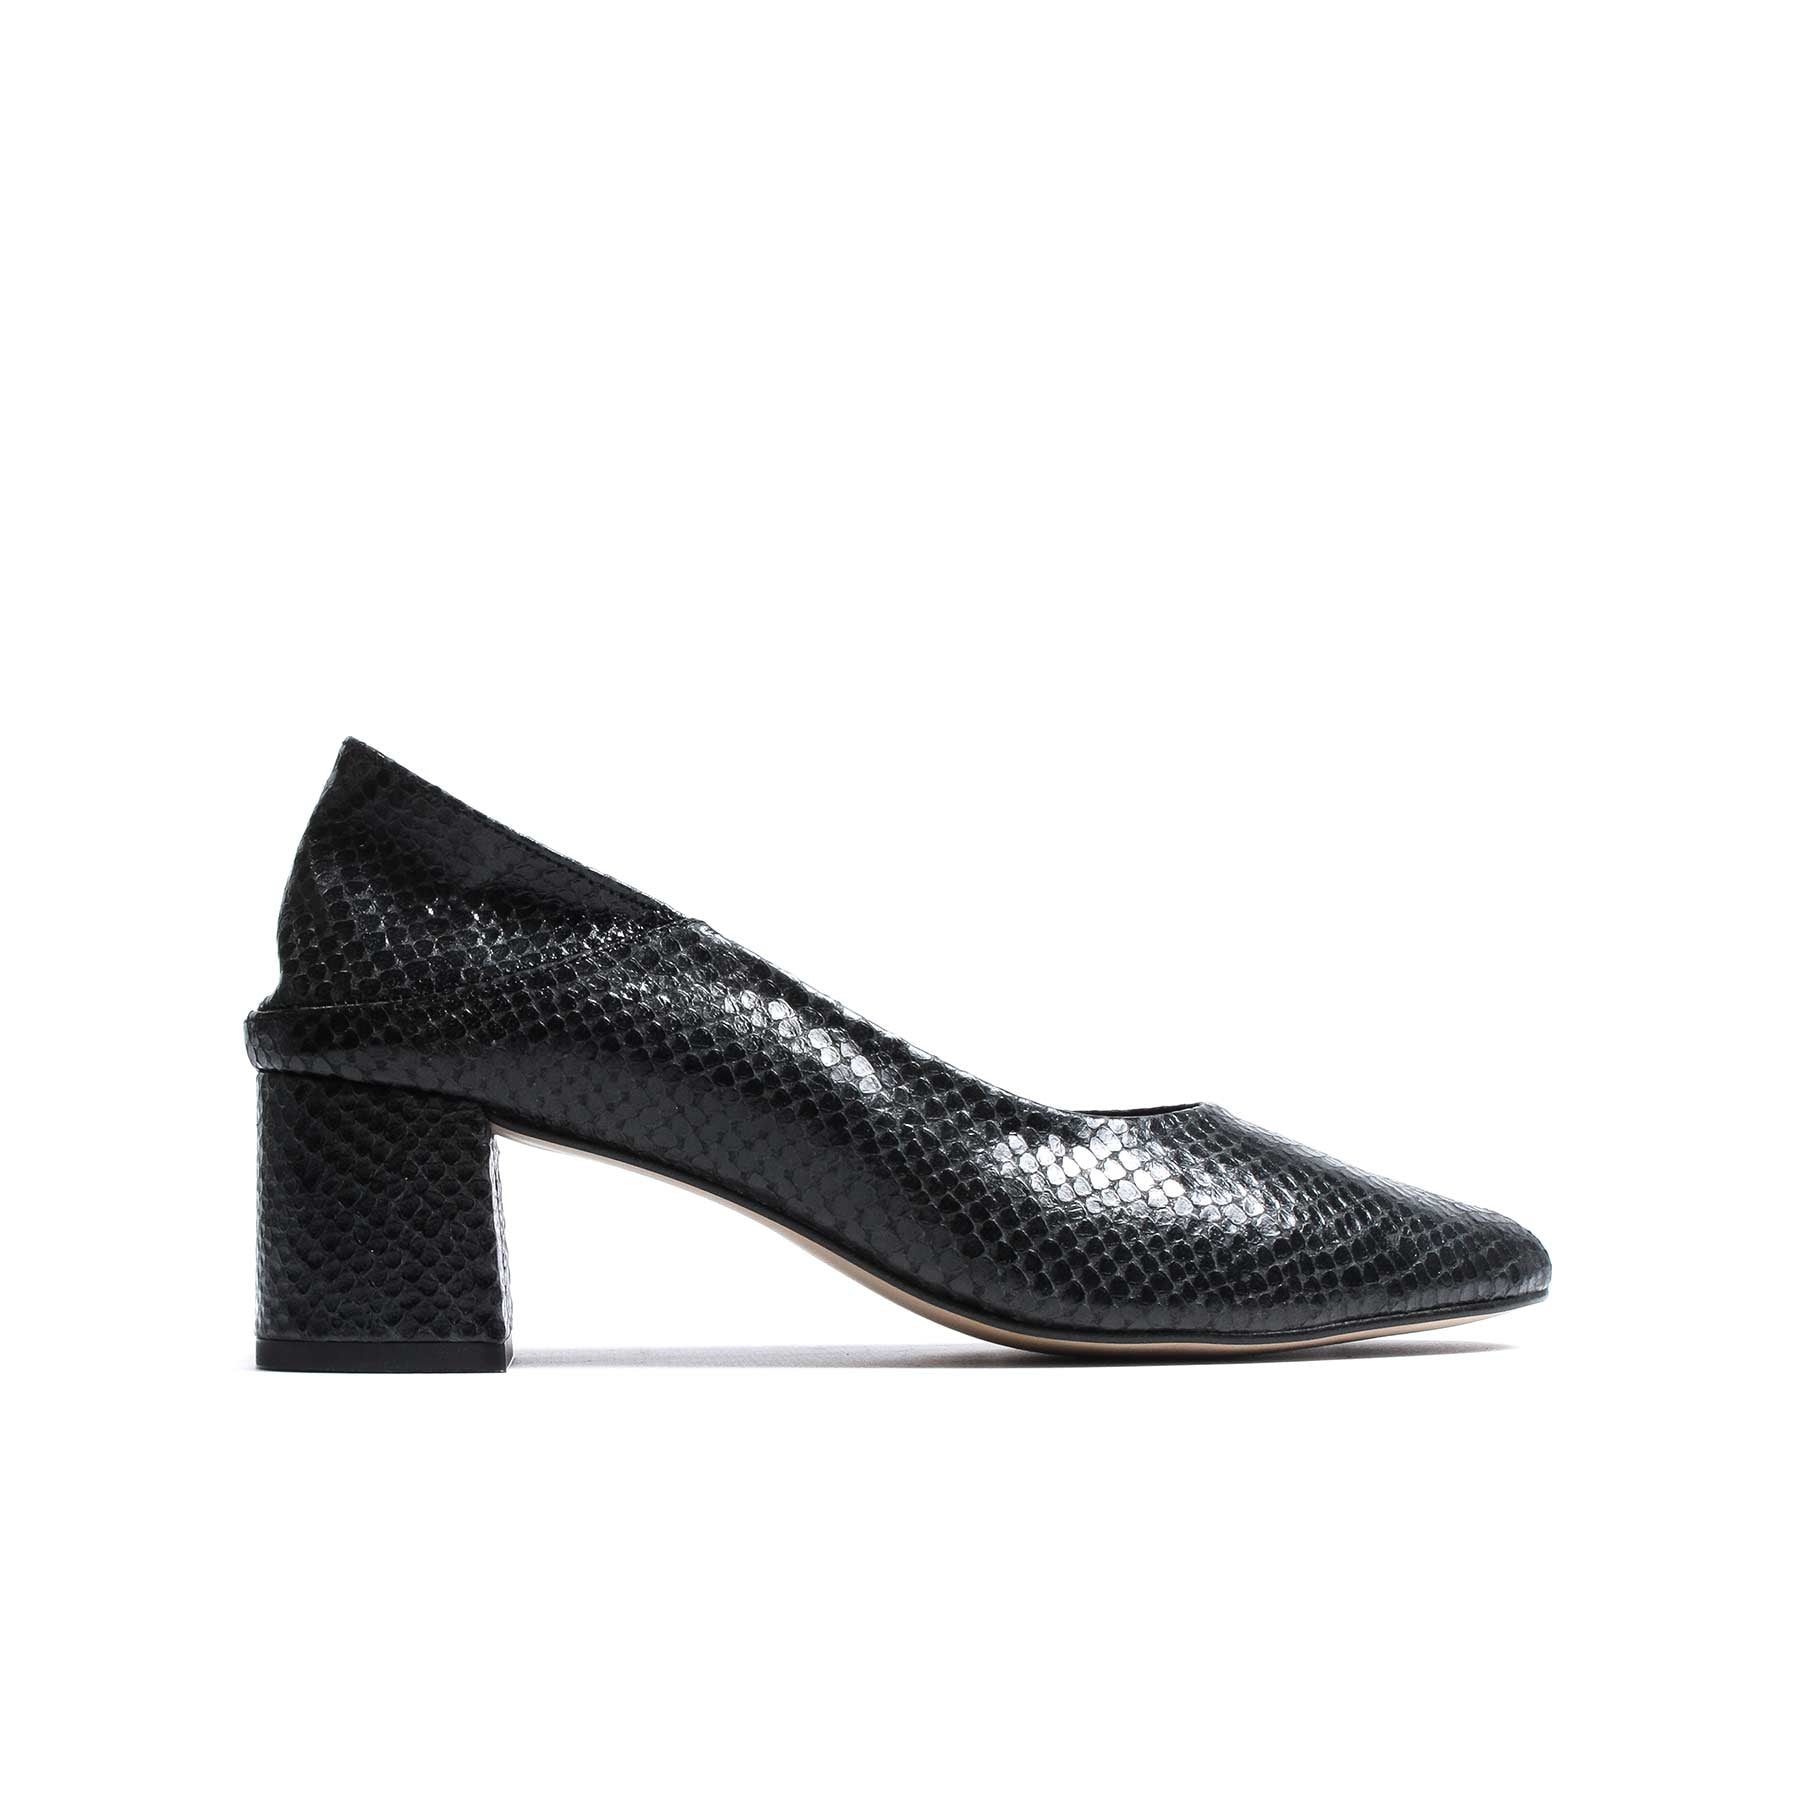 Julany Black Snake Leather